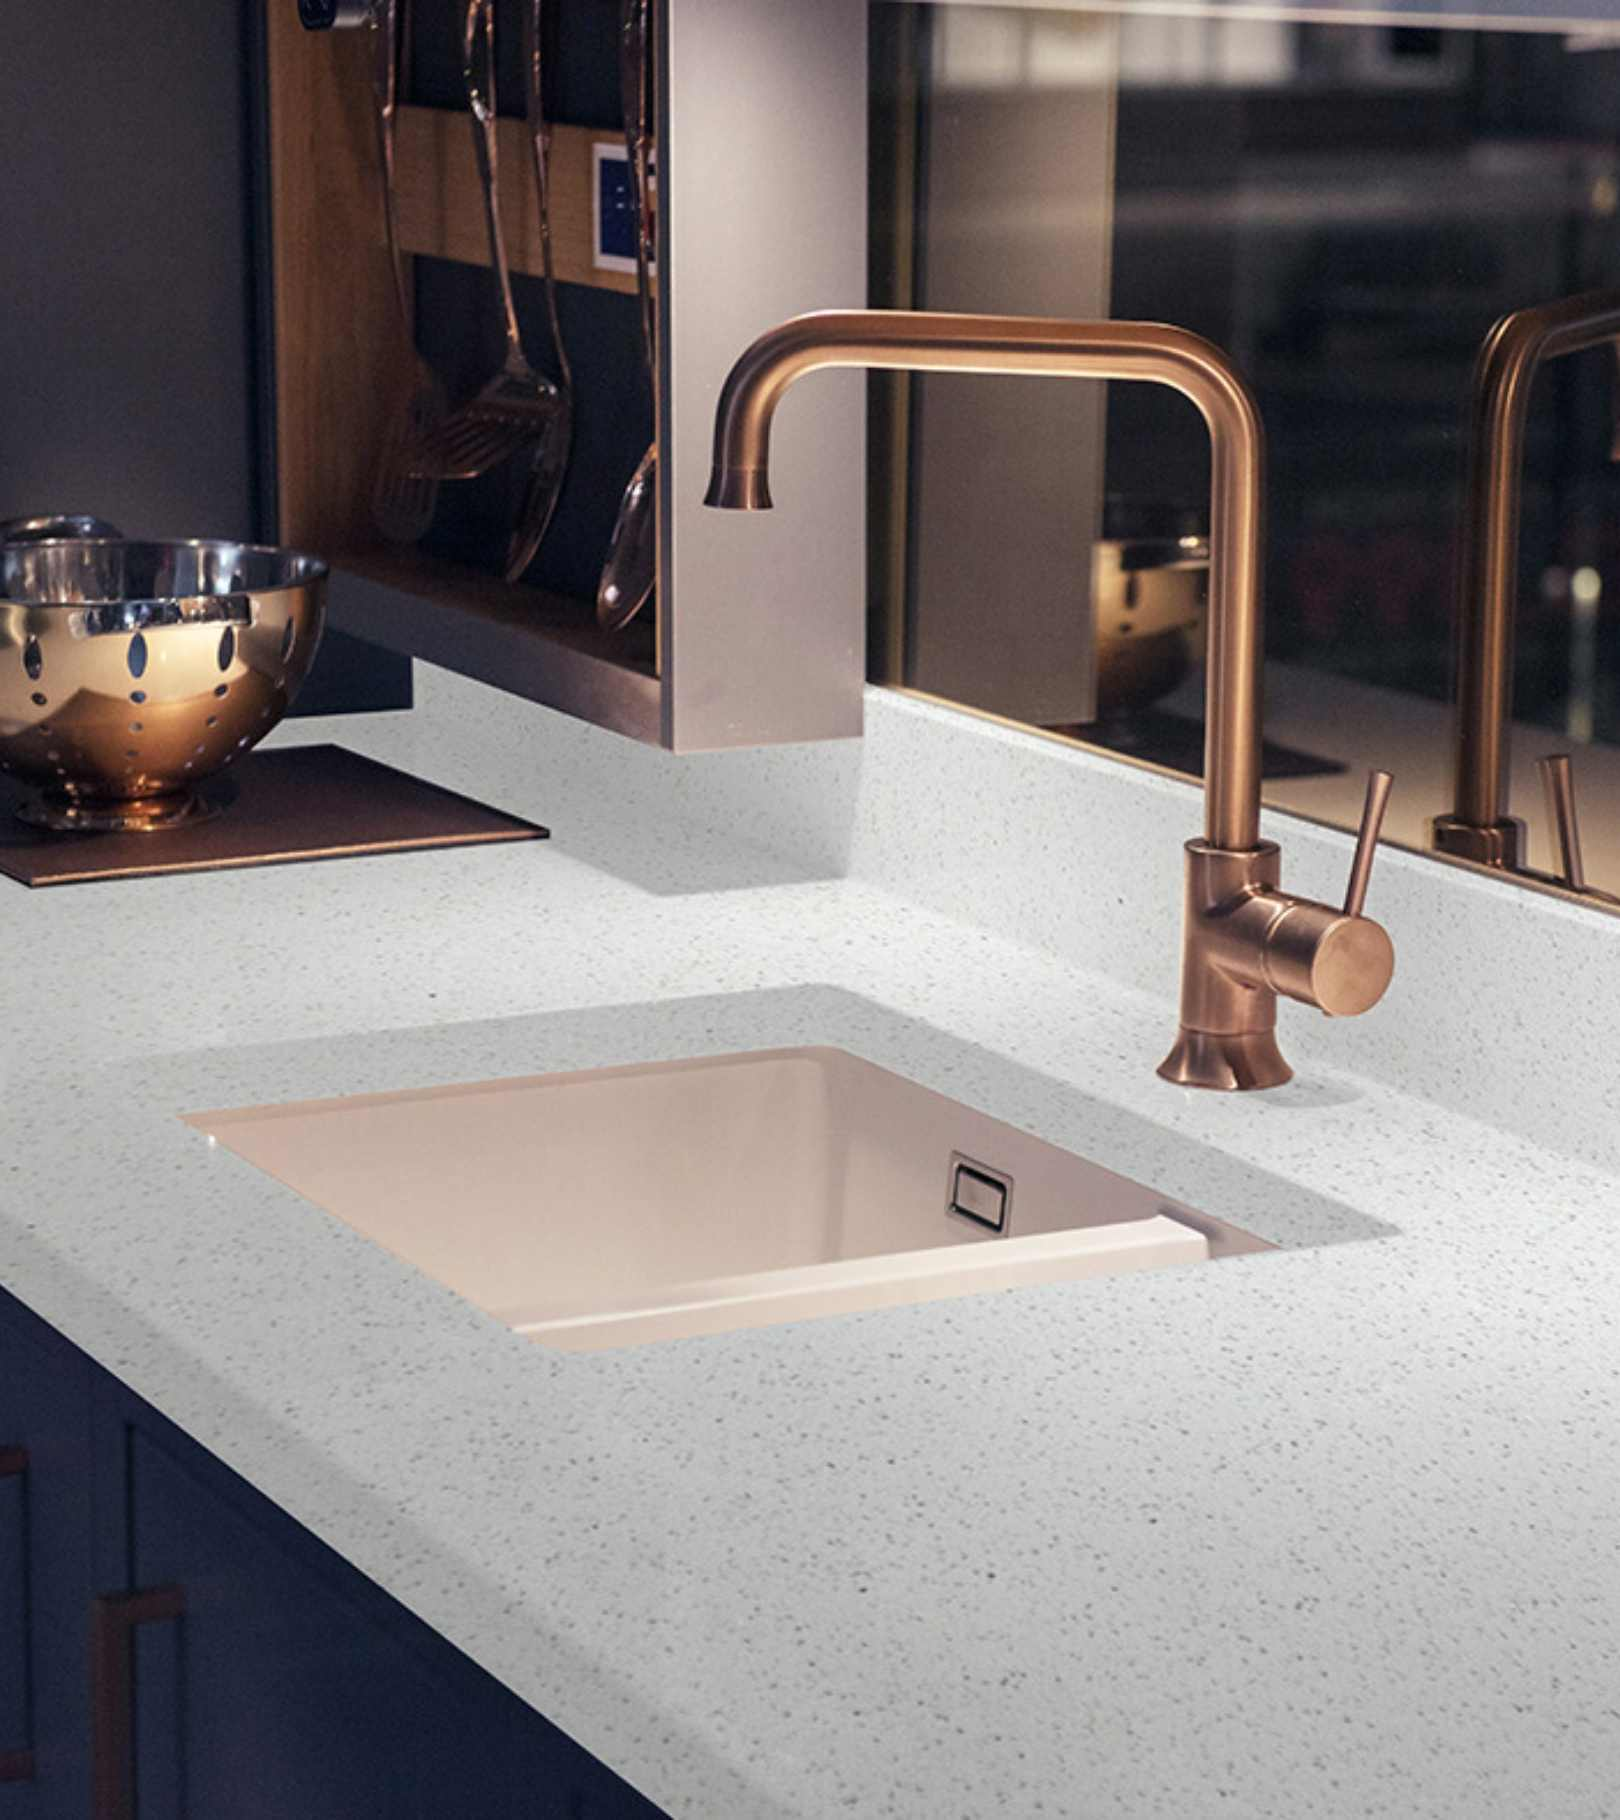 Silver Start White quartz countertop